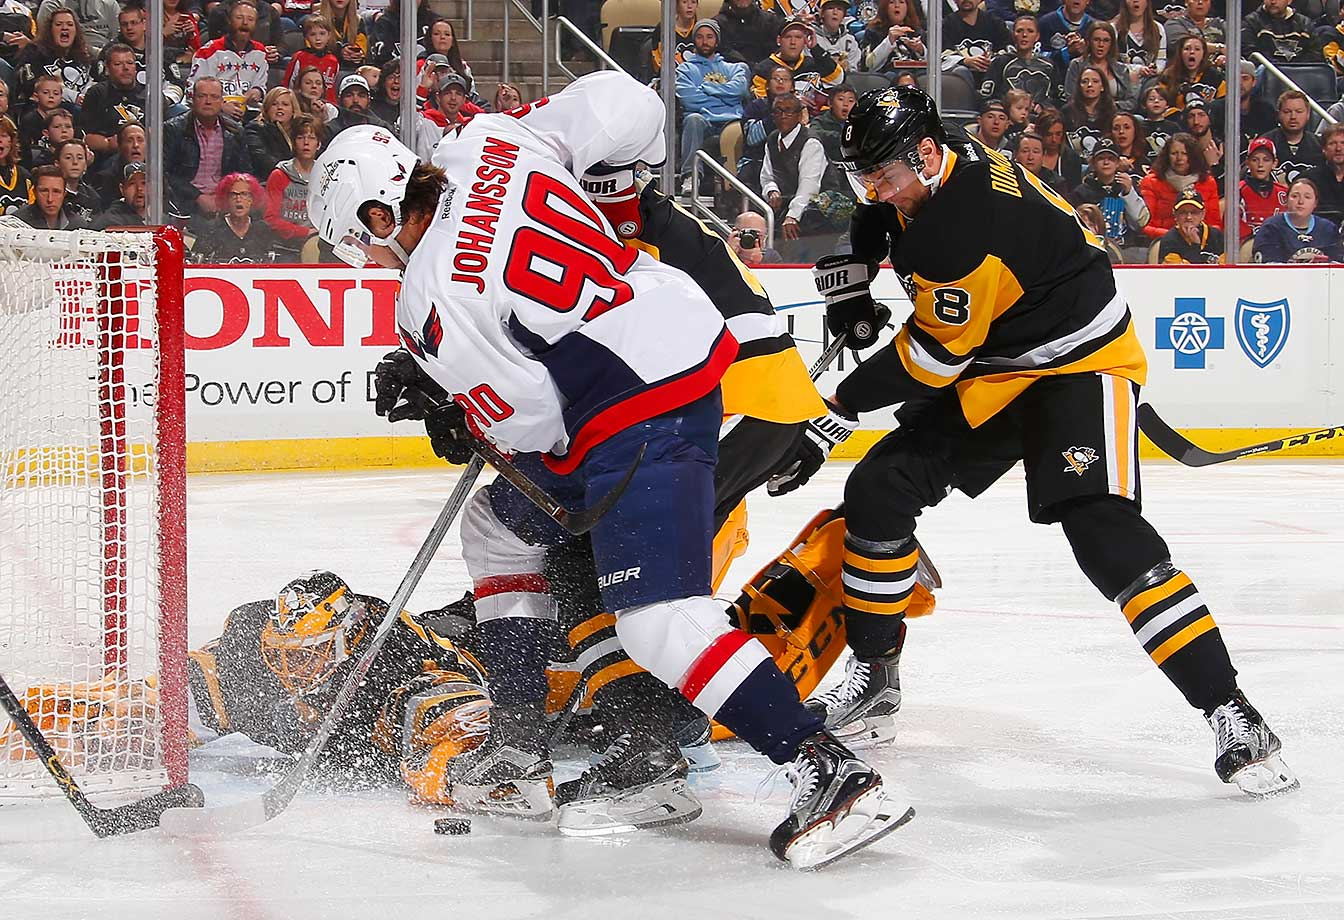 Marc-Andre Fleury of the Pittsburgh Penguins makes a save on a shot by Marcus Johansson of the Washington Capitals.